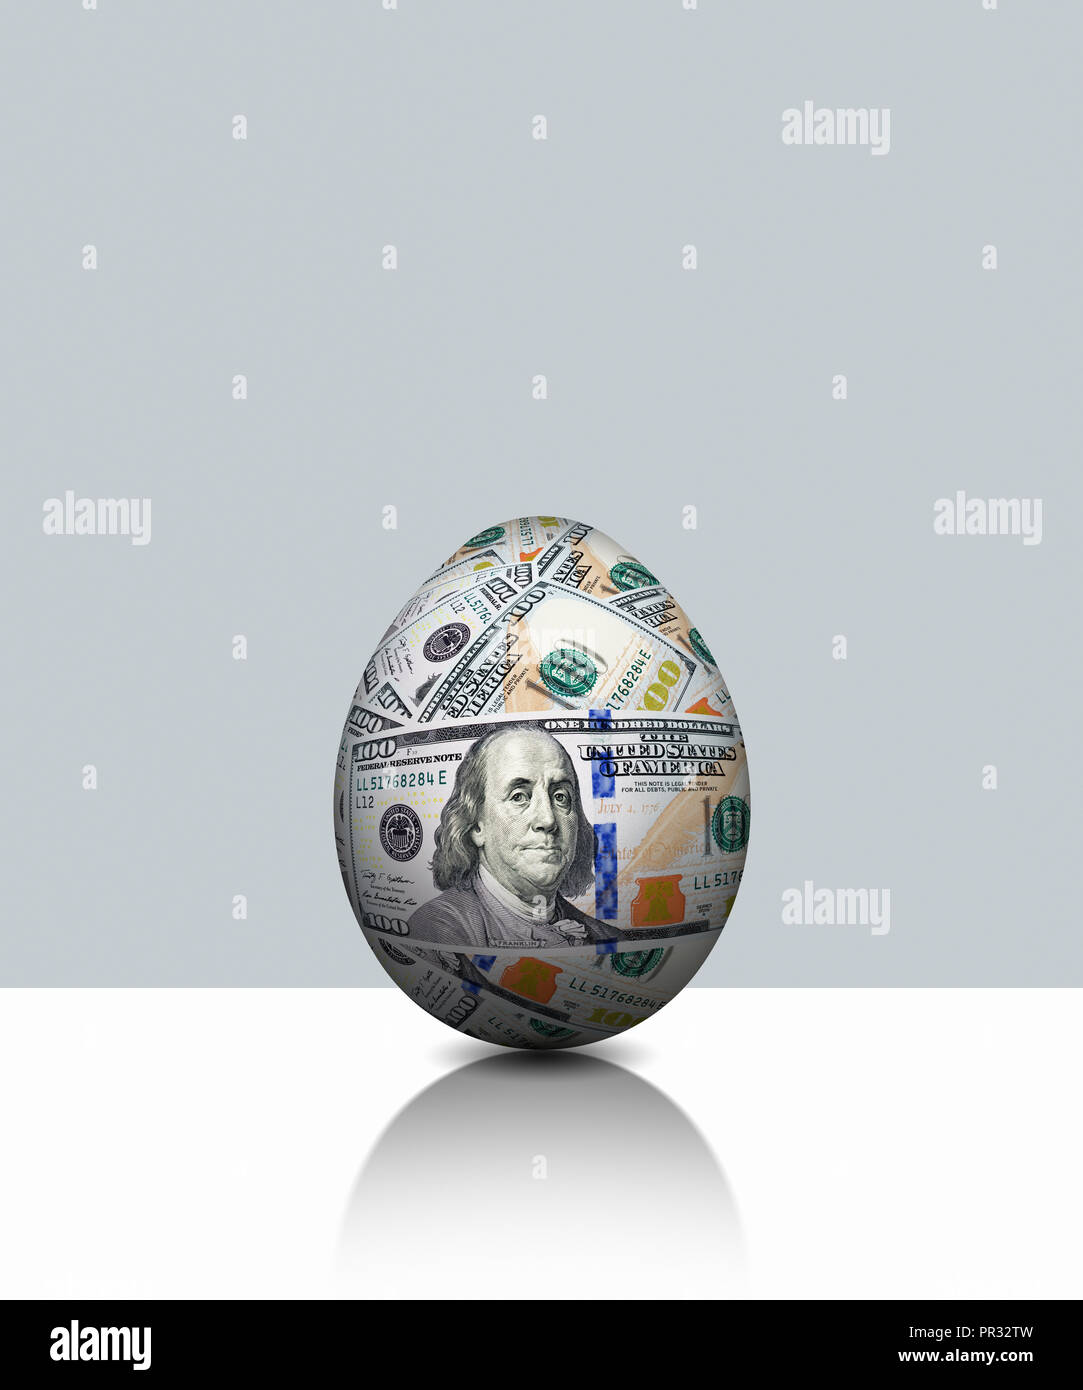 Global Currency, Egg Made from US USD $100 Hundred Dollar - Stock Image